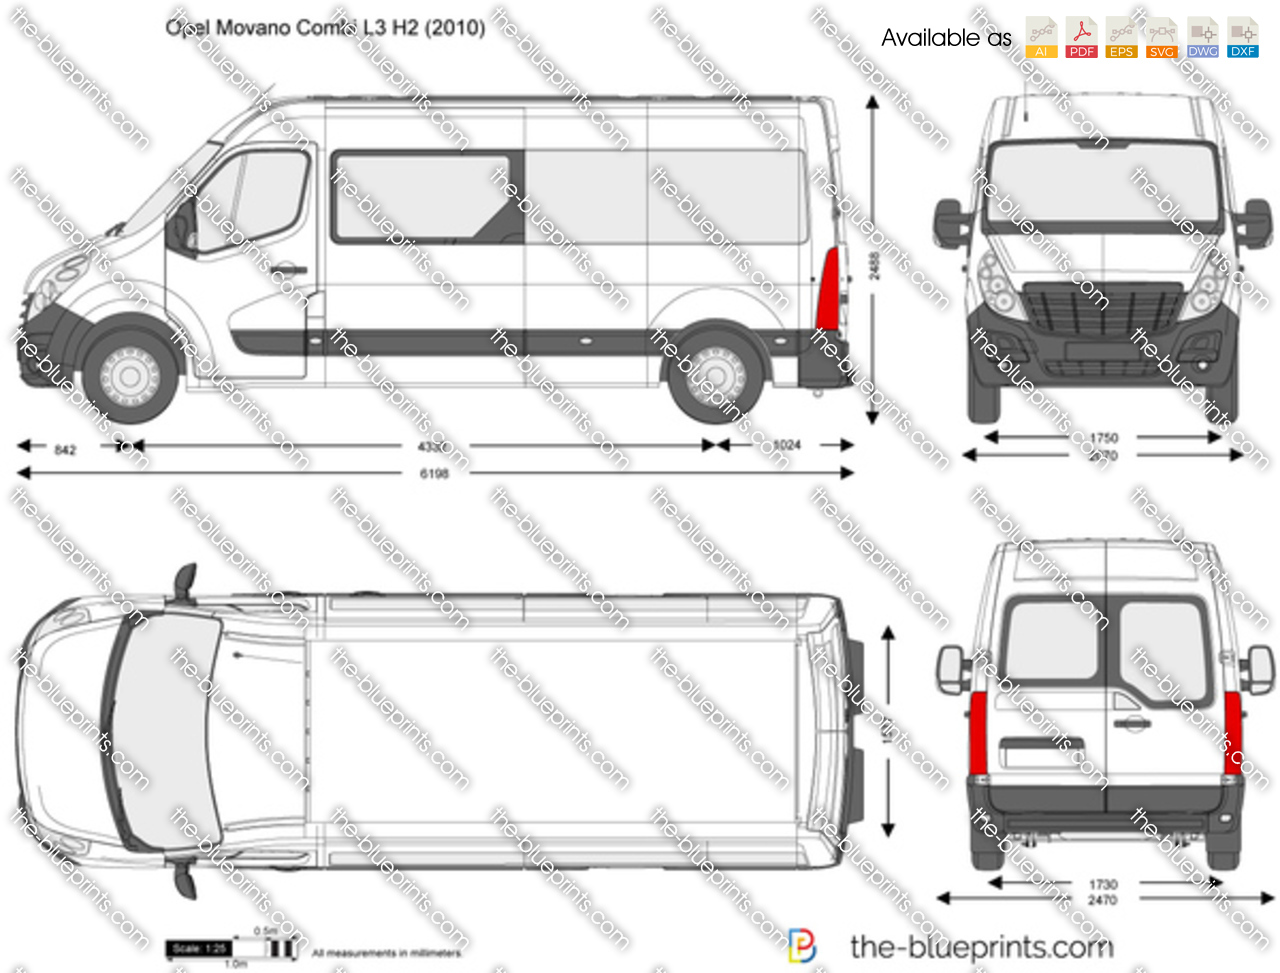 opel movano combi l3 h2 vector drawing